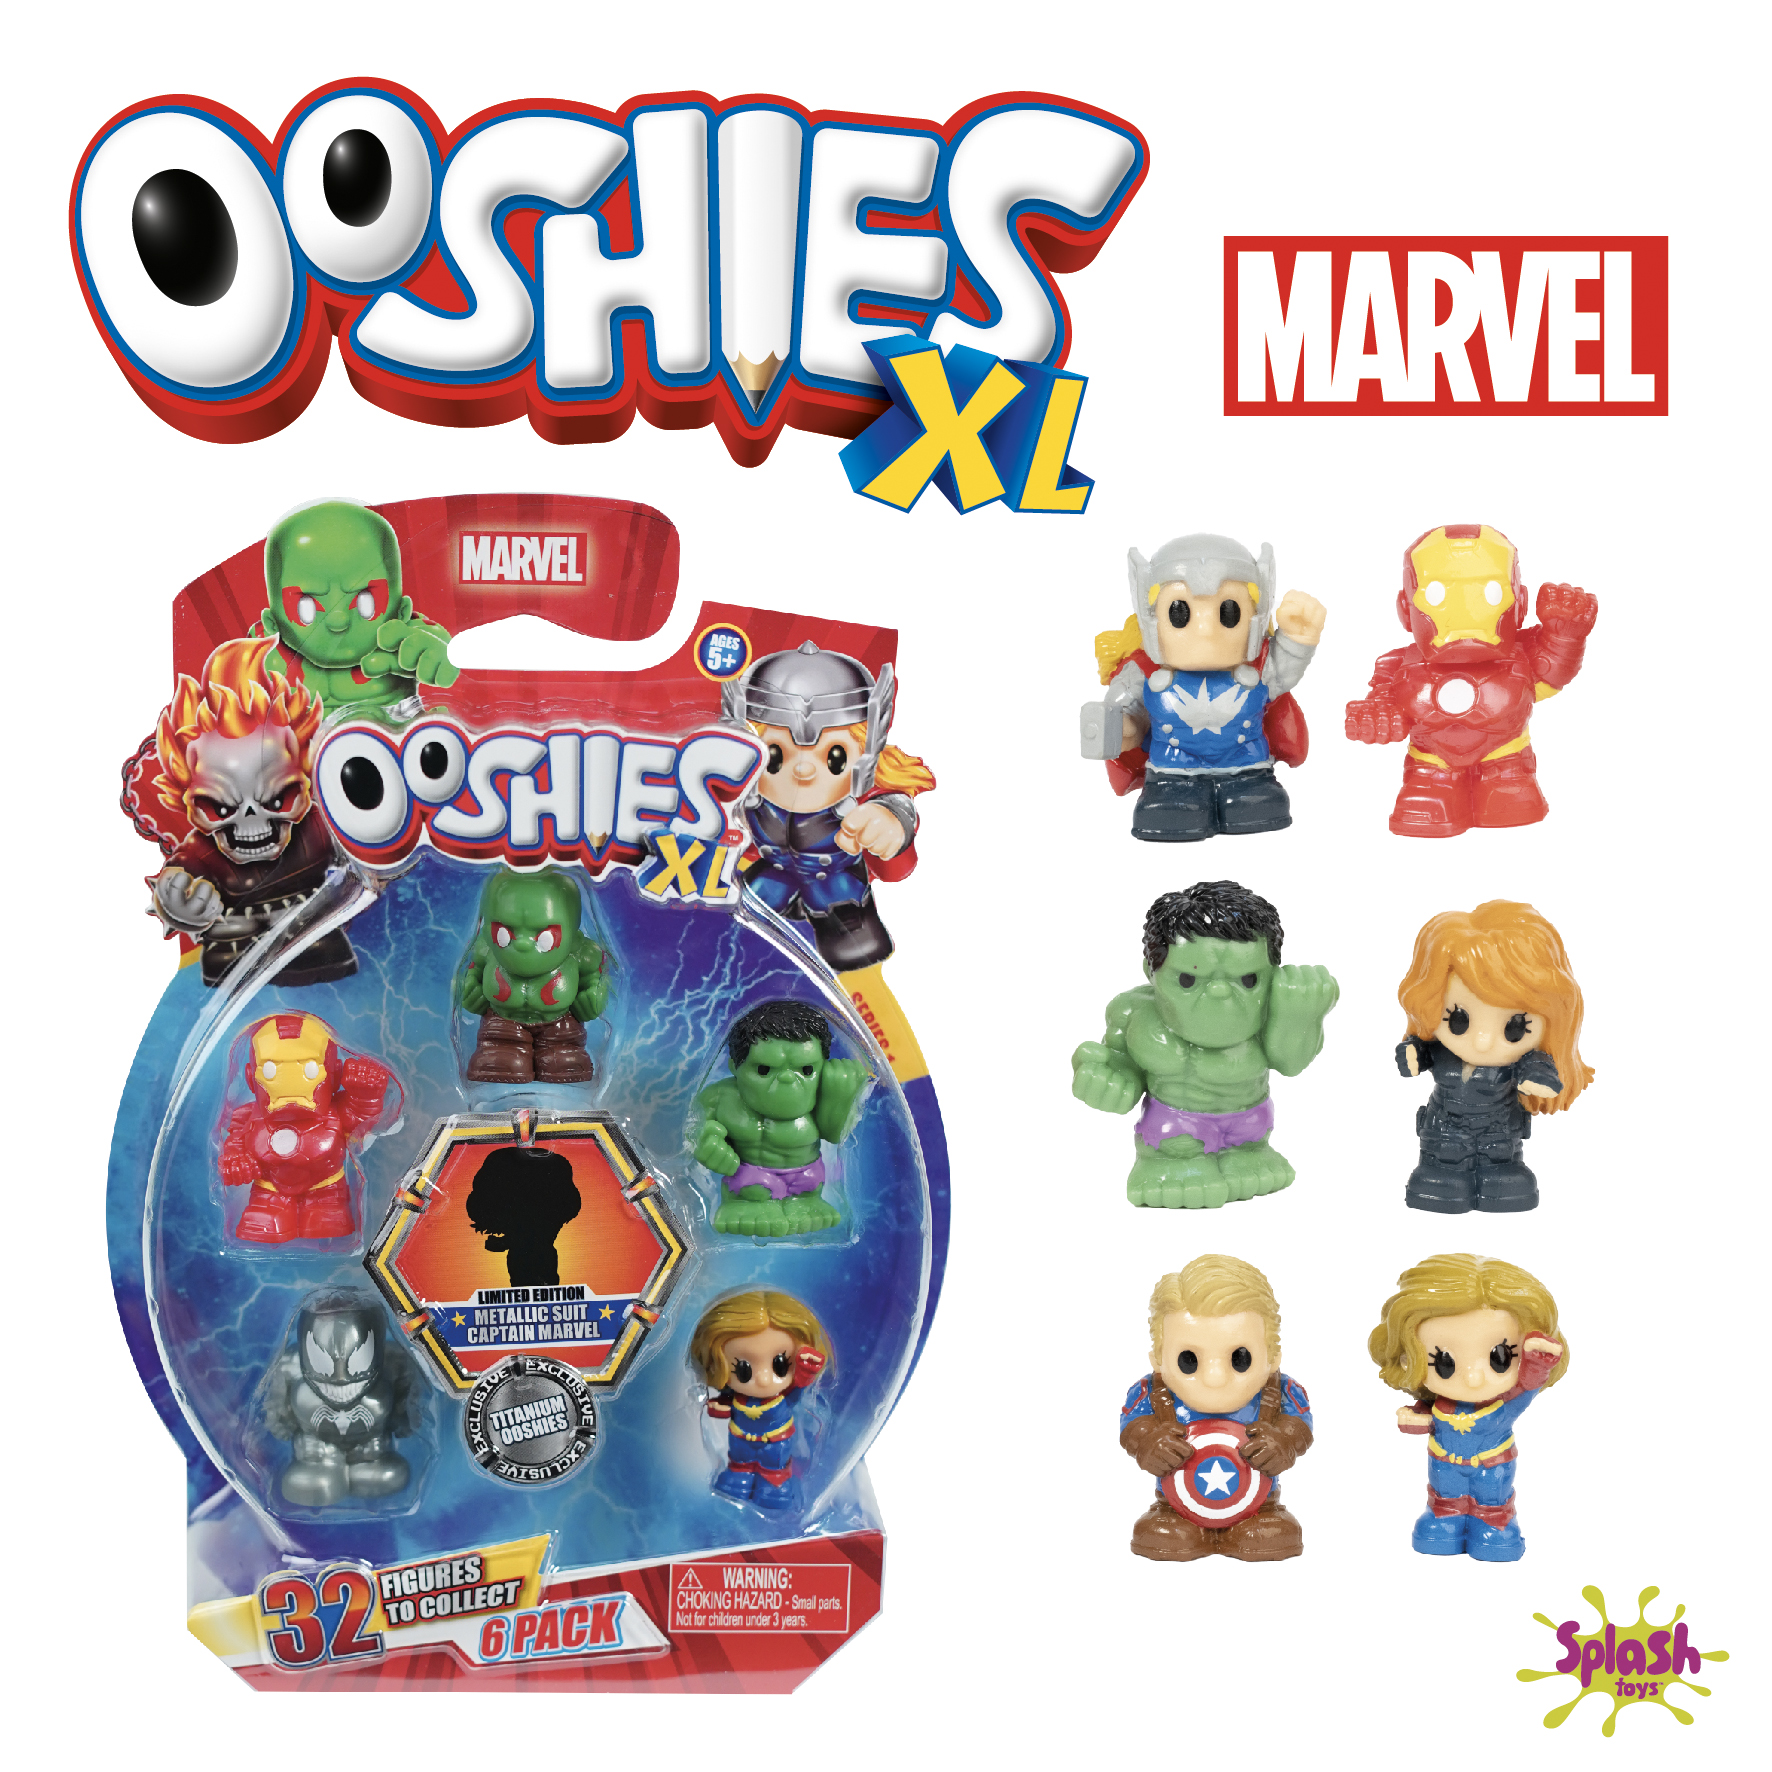 Ooshies XL Marvel